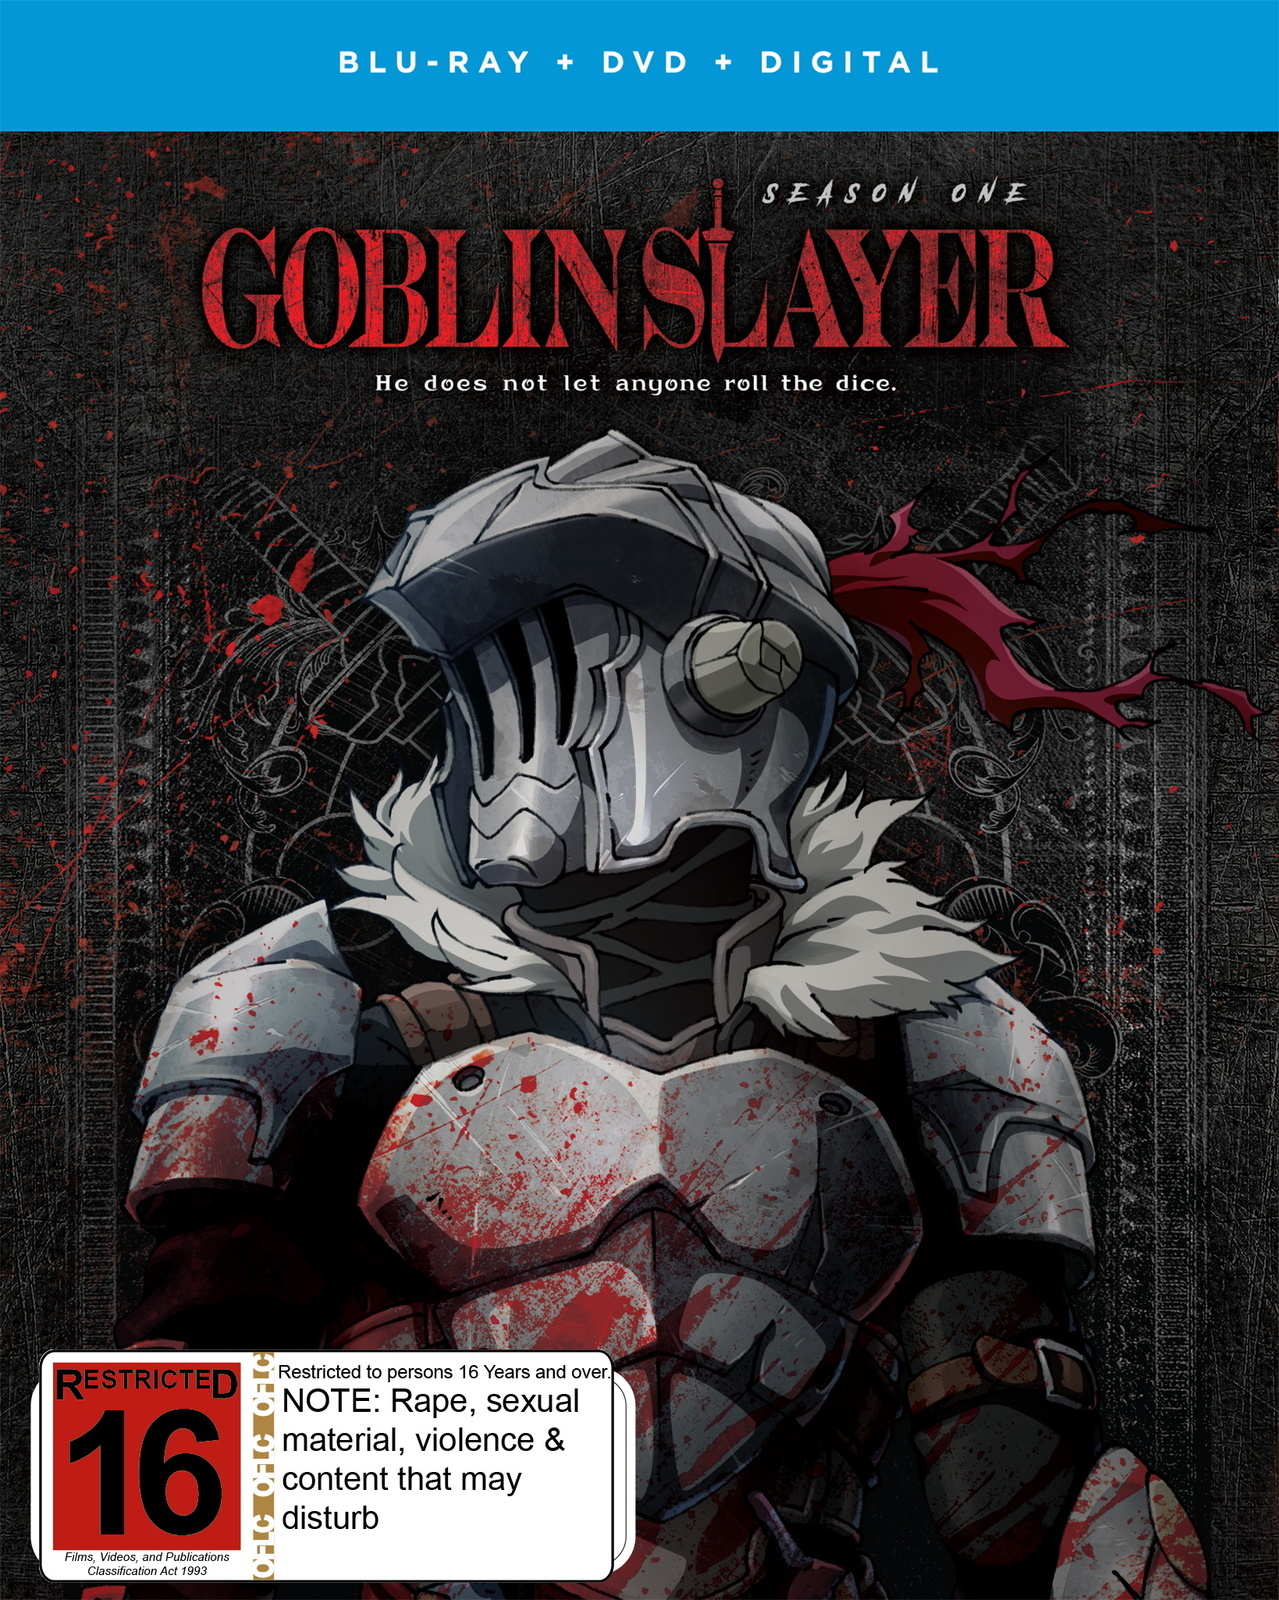 Goblin Slayer - Season 1 DVD/Blu-ray Combo on Blu-ray image